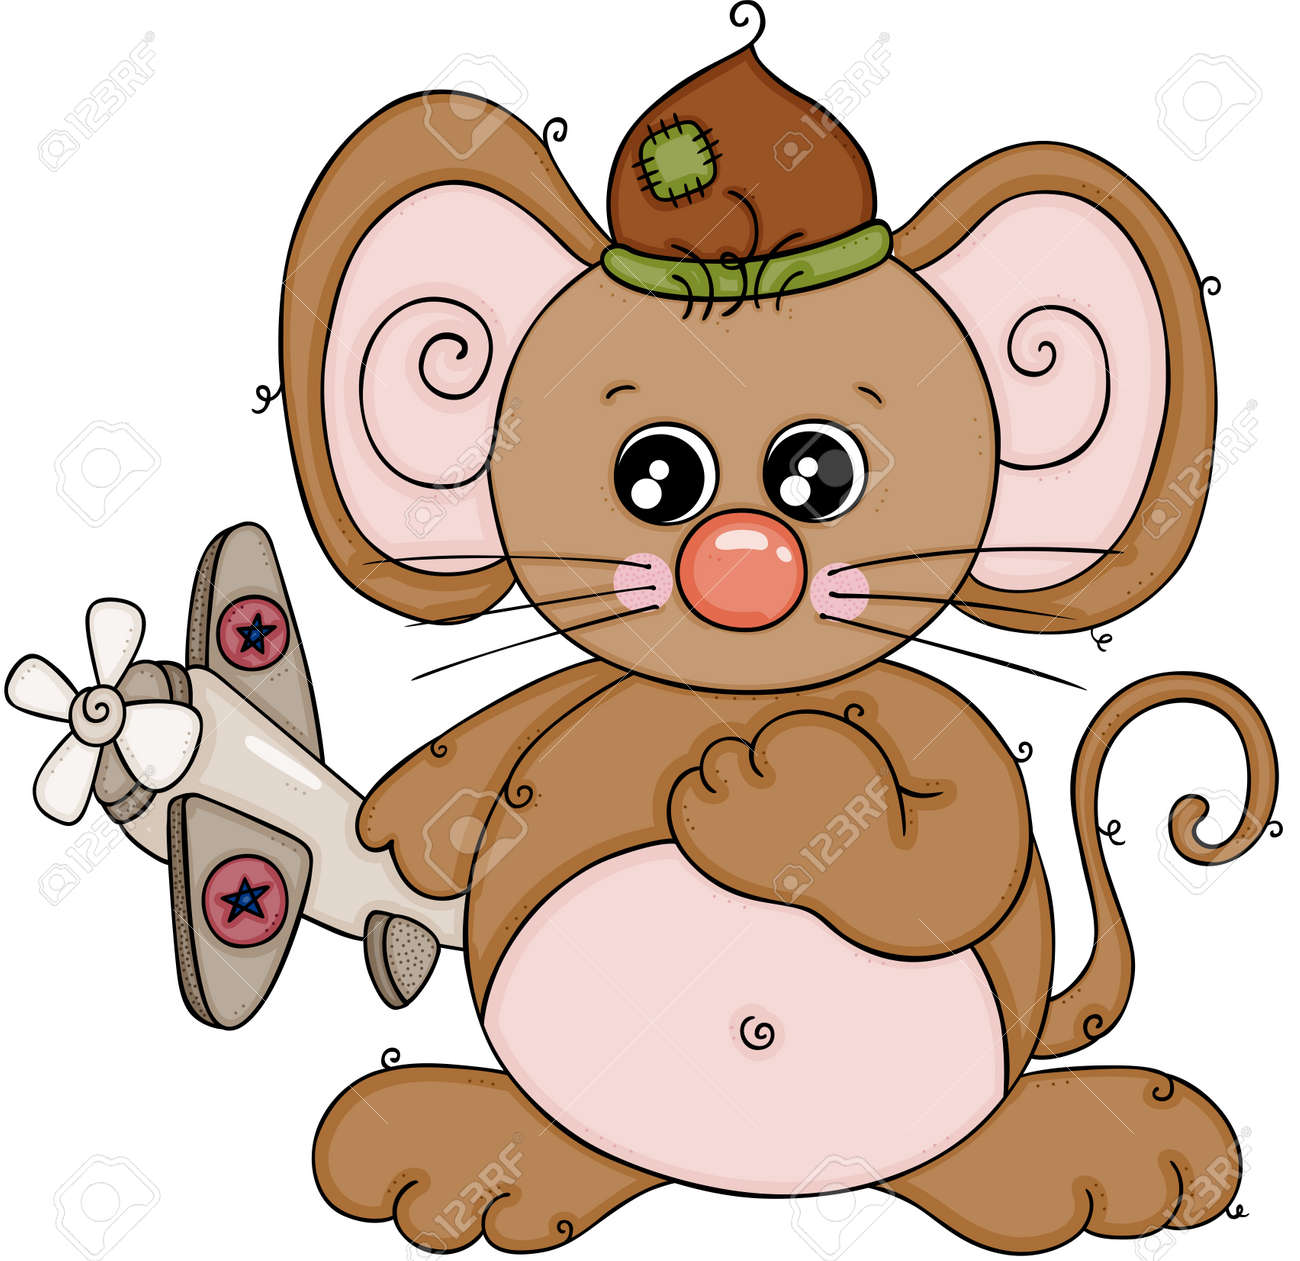 Cute brown mouse playing with little airplane - 135814185